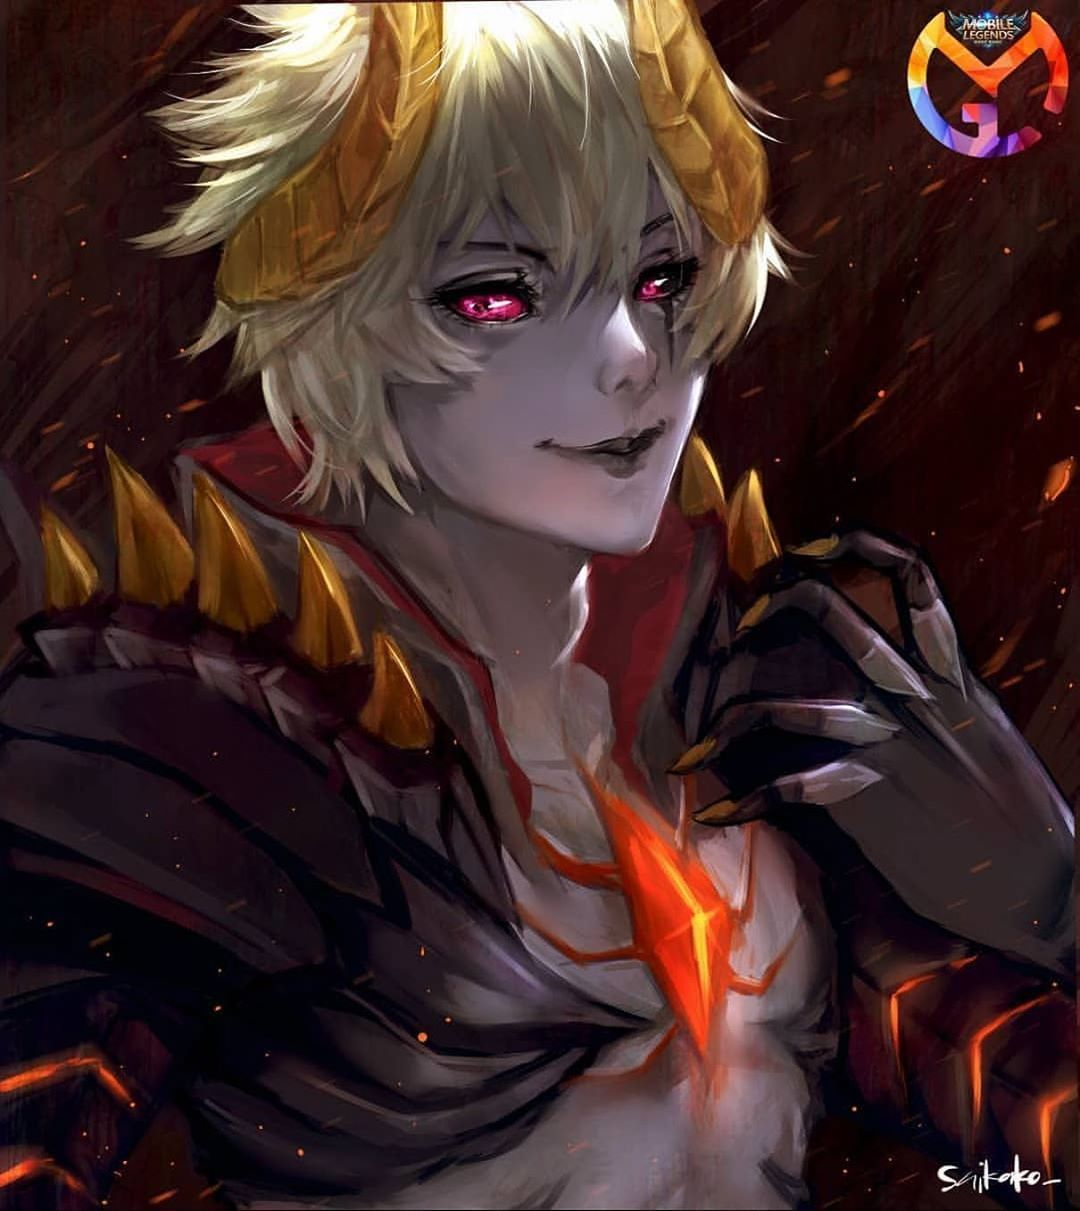 Pin by Cupcake on MOBILE LEGENDS in 2020 Alucard mobile